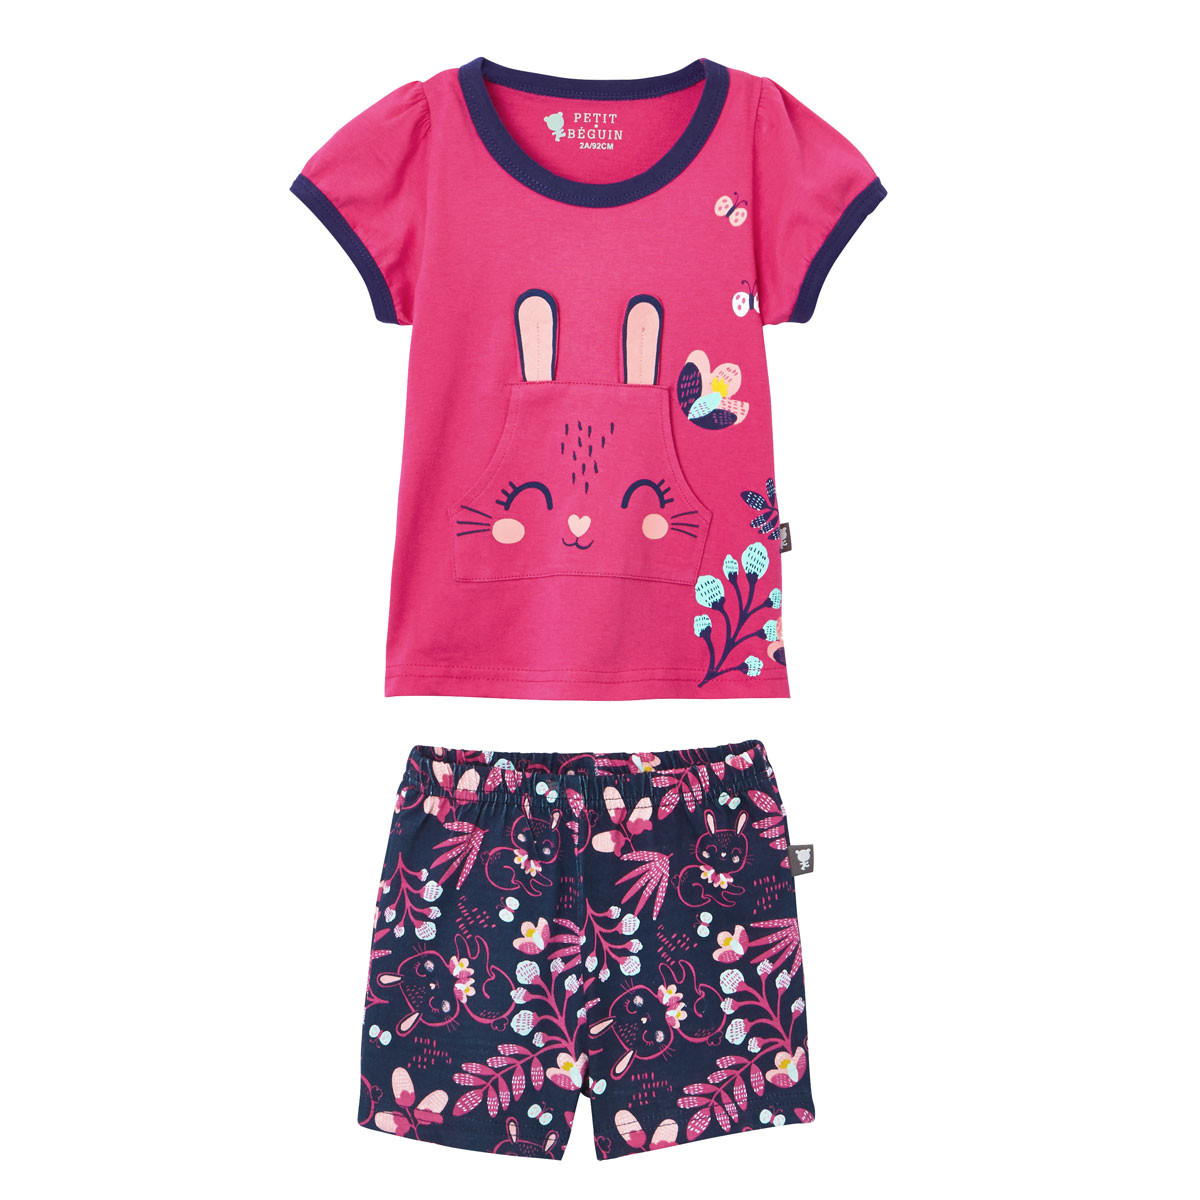 6bbb840ee72bb Pyjama manches courtes fille Pink Bunny - PETIT BEGUIN